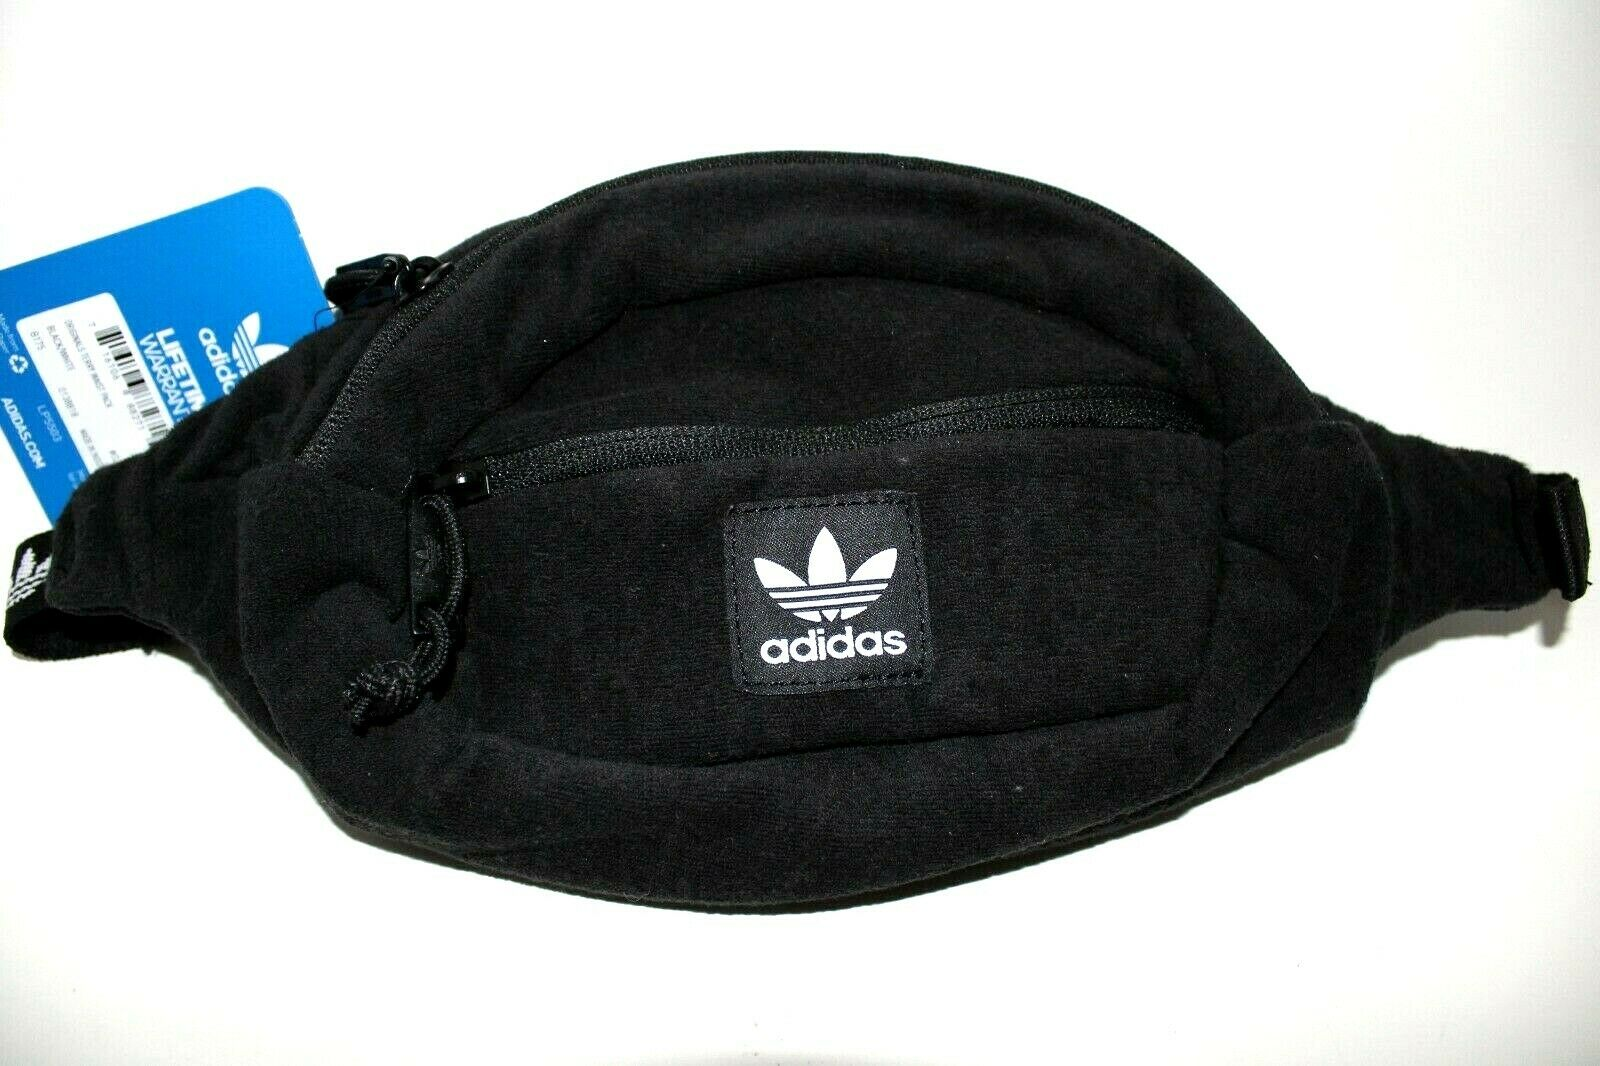 Adidas Originals Terry Adjustable Waist Fanny Pack Black/Whi